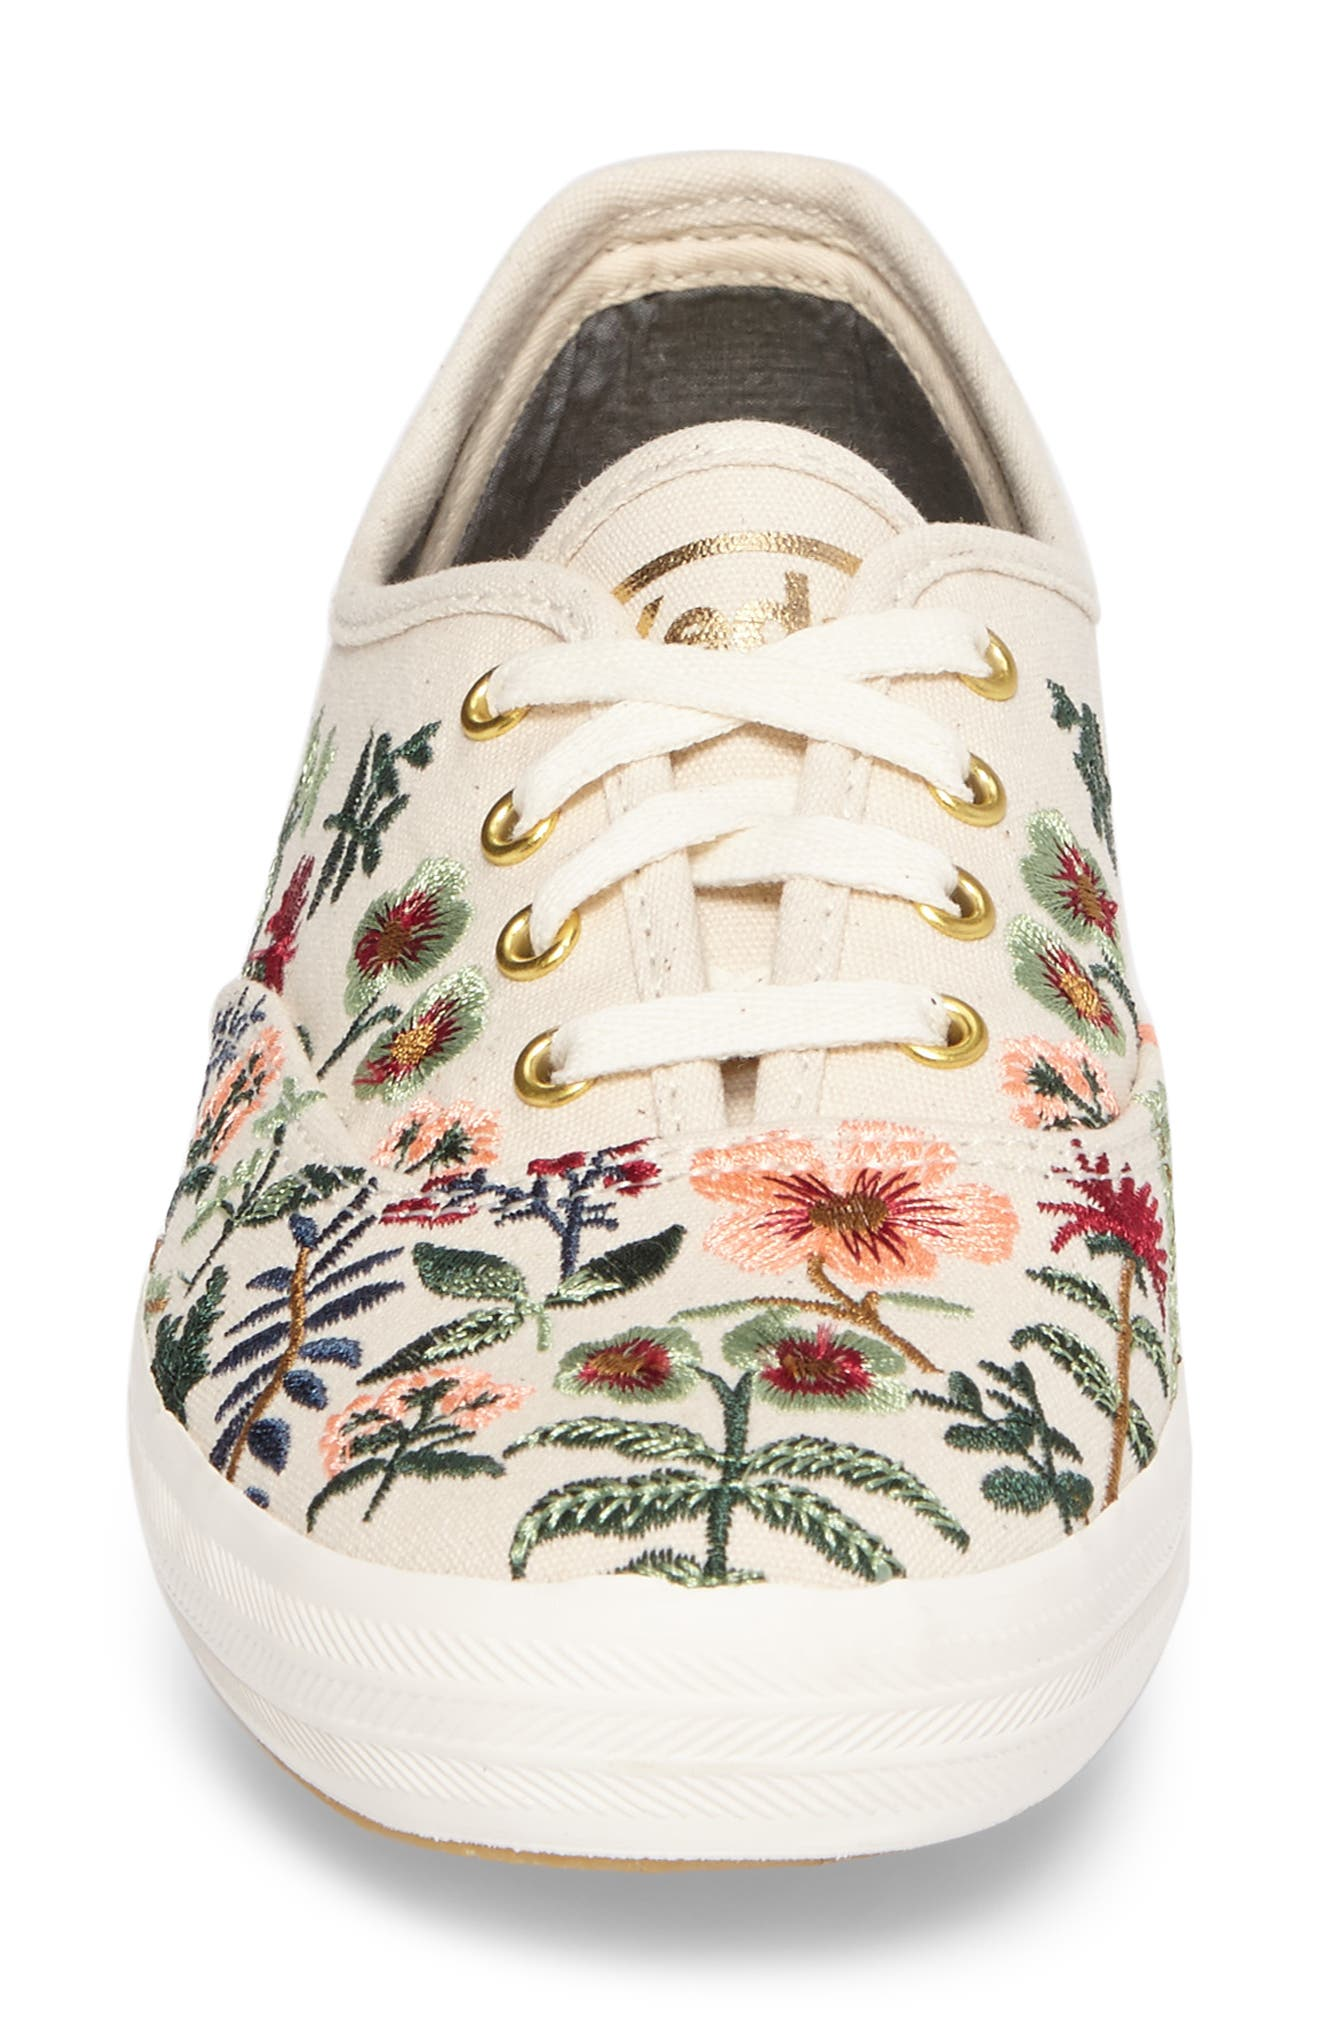 Alternate Image 4  - Keds® x Rifle Paper Co. Herb Garden Embroidered Sneaker (Women)